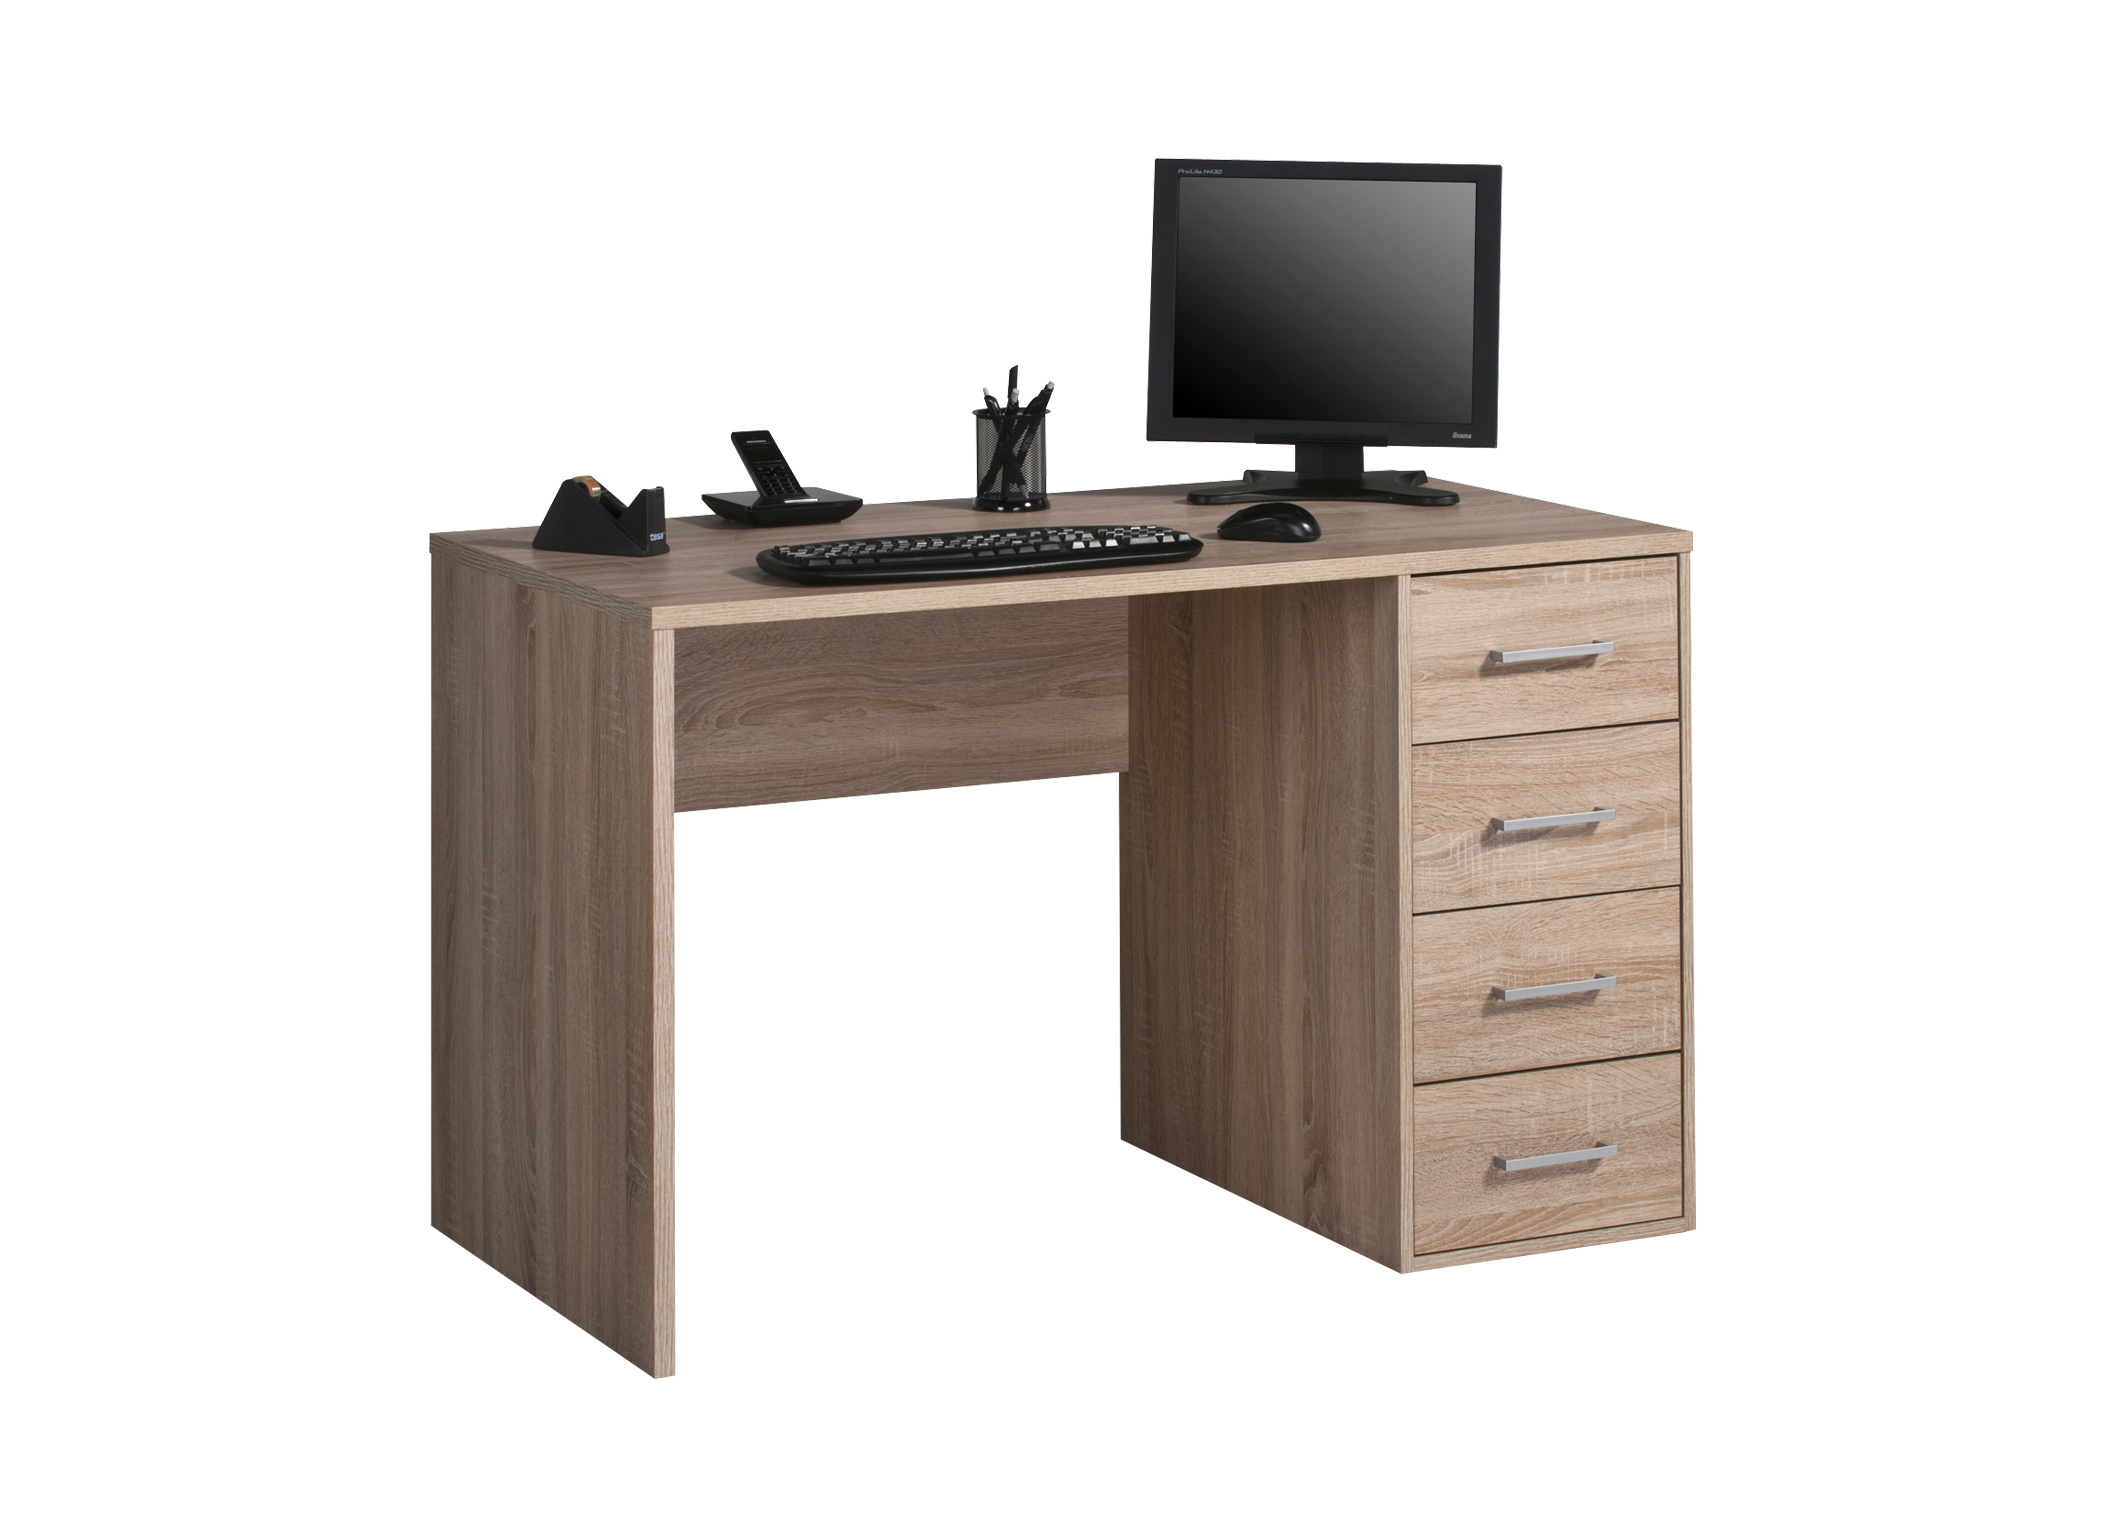 schreibtisch arbeitstisch workstation b rotisch mod t149 weiss sonoma eiche ebay. Black Bedroom Furniture Sets. Home Design Ideas